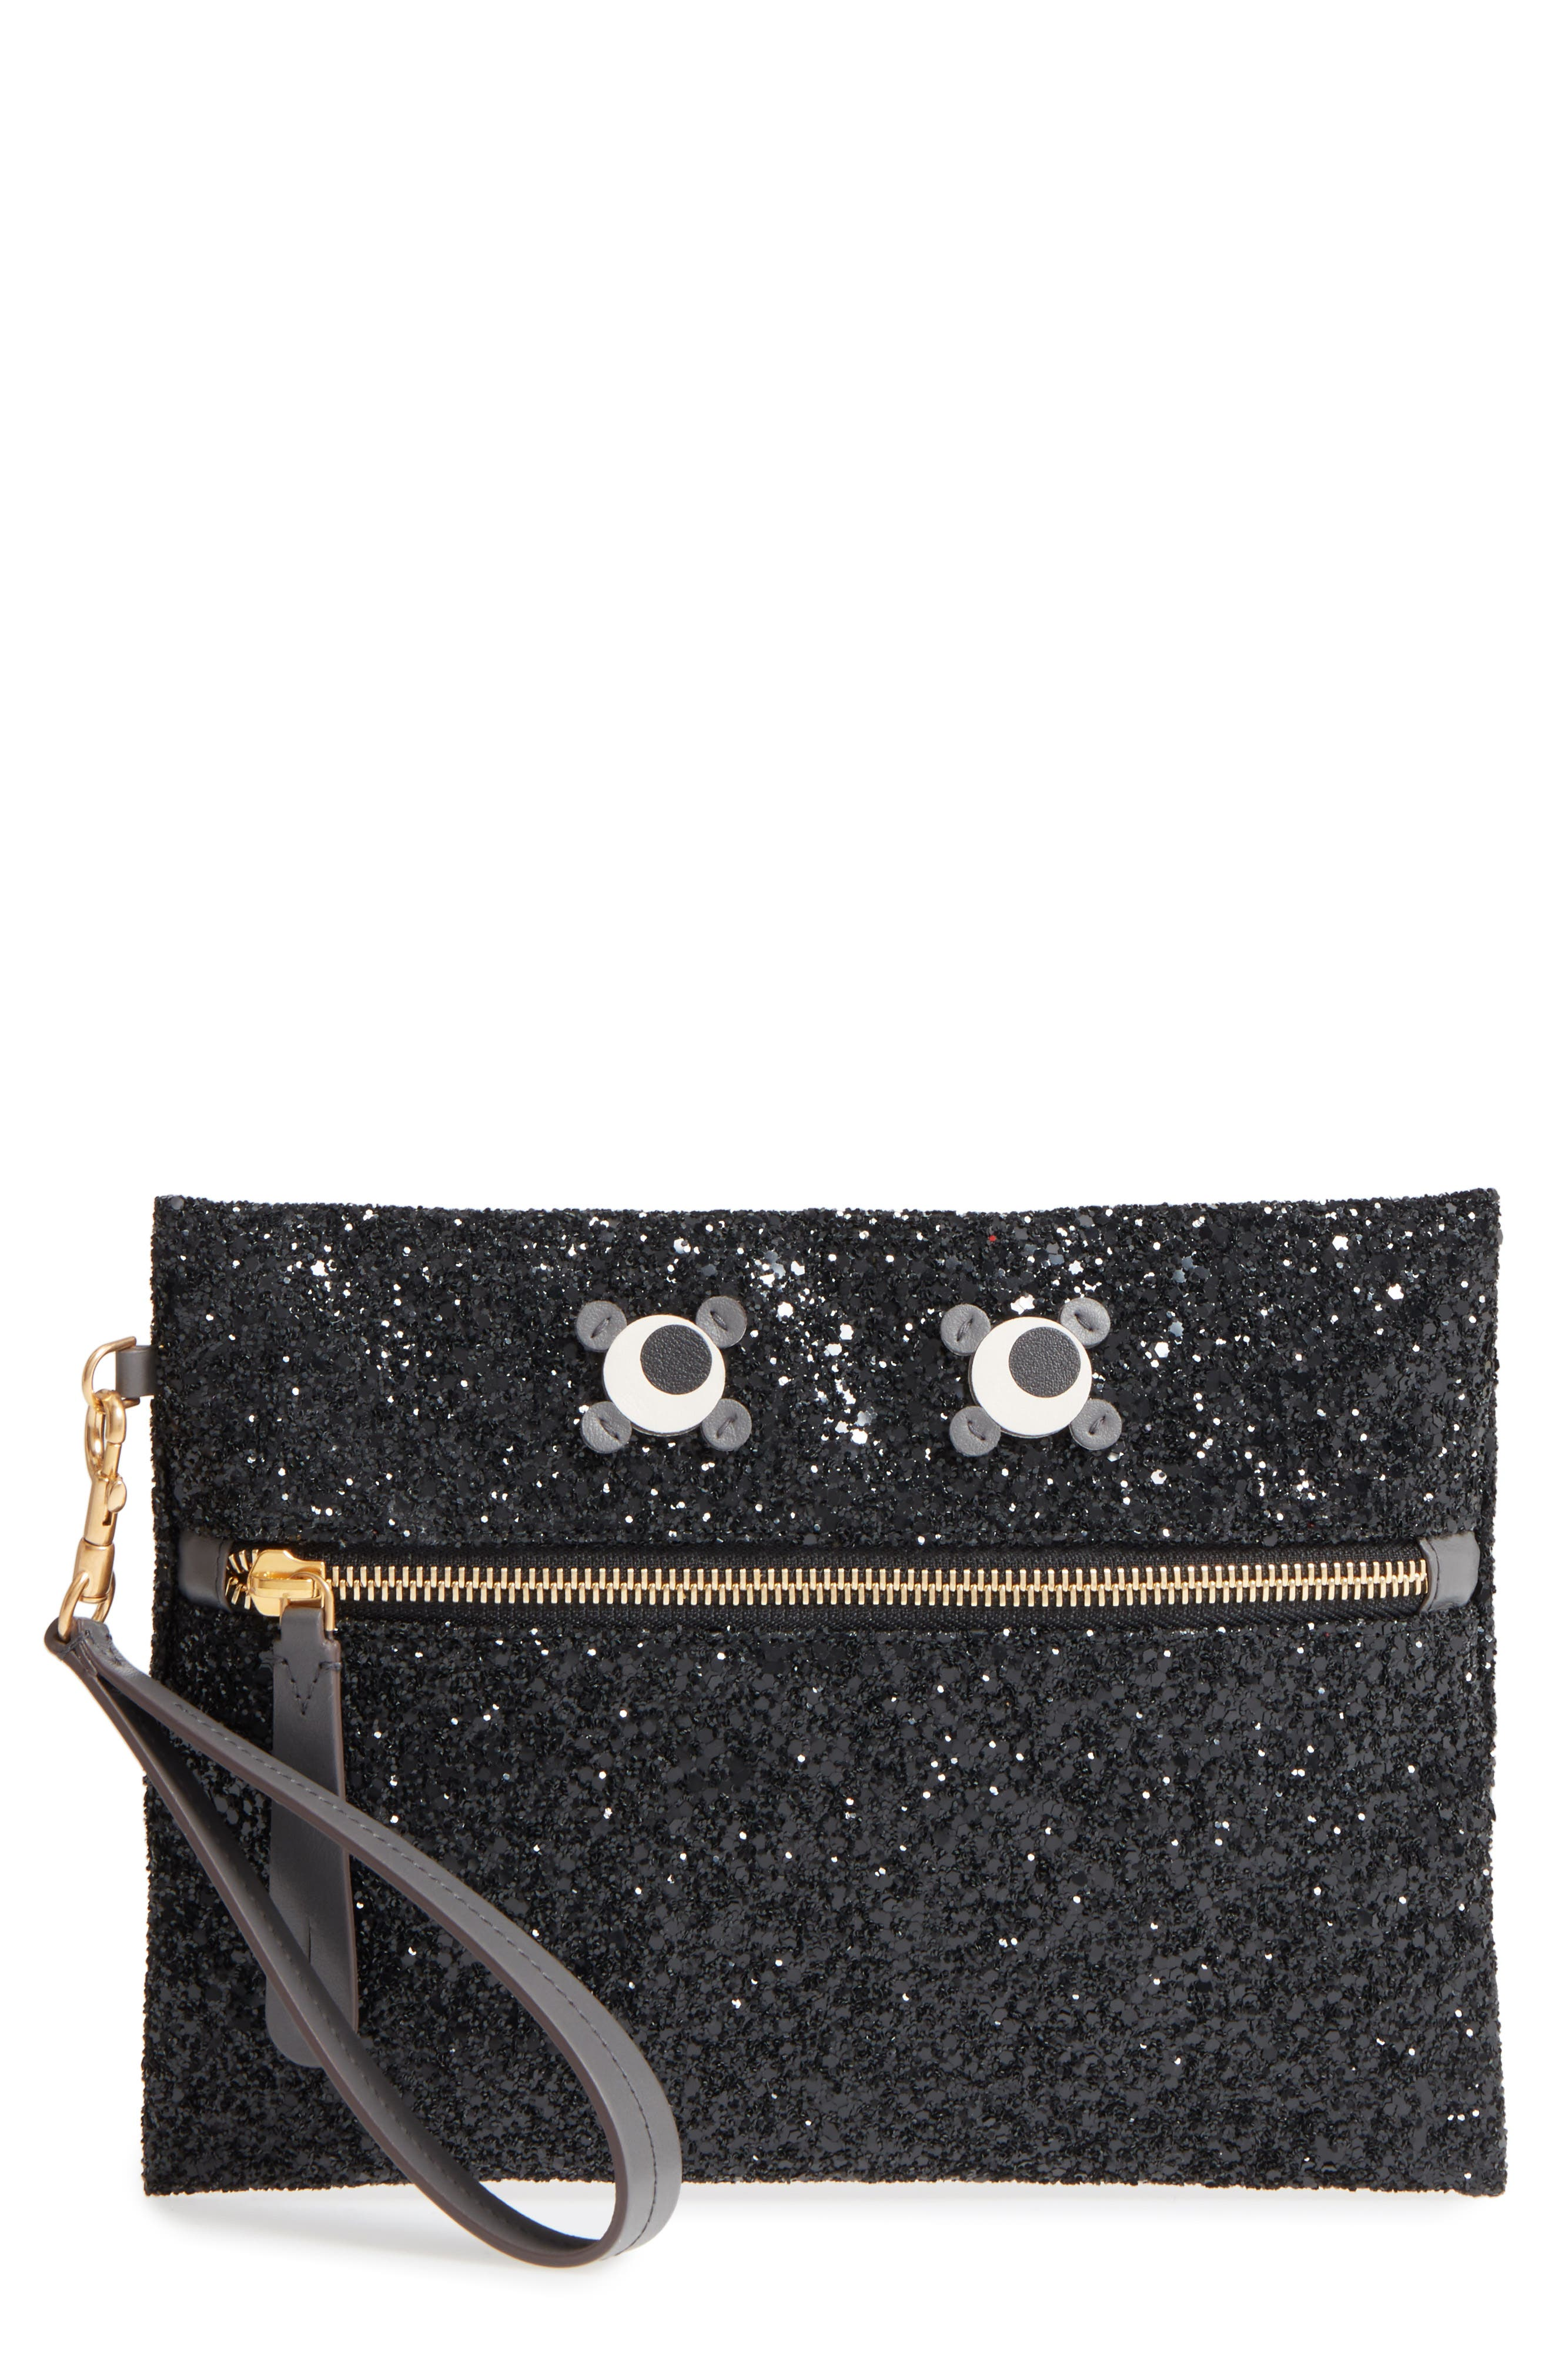 Alternate Image 1 Selected - Anya Hindmarch Eyes Circulus Glitter Pouch